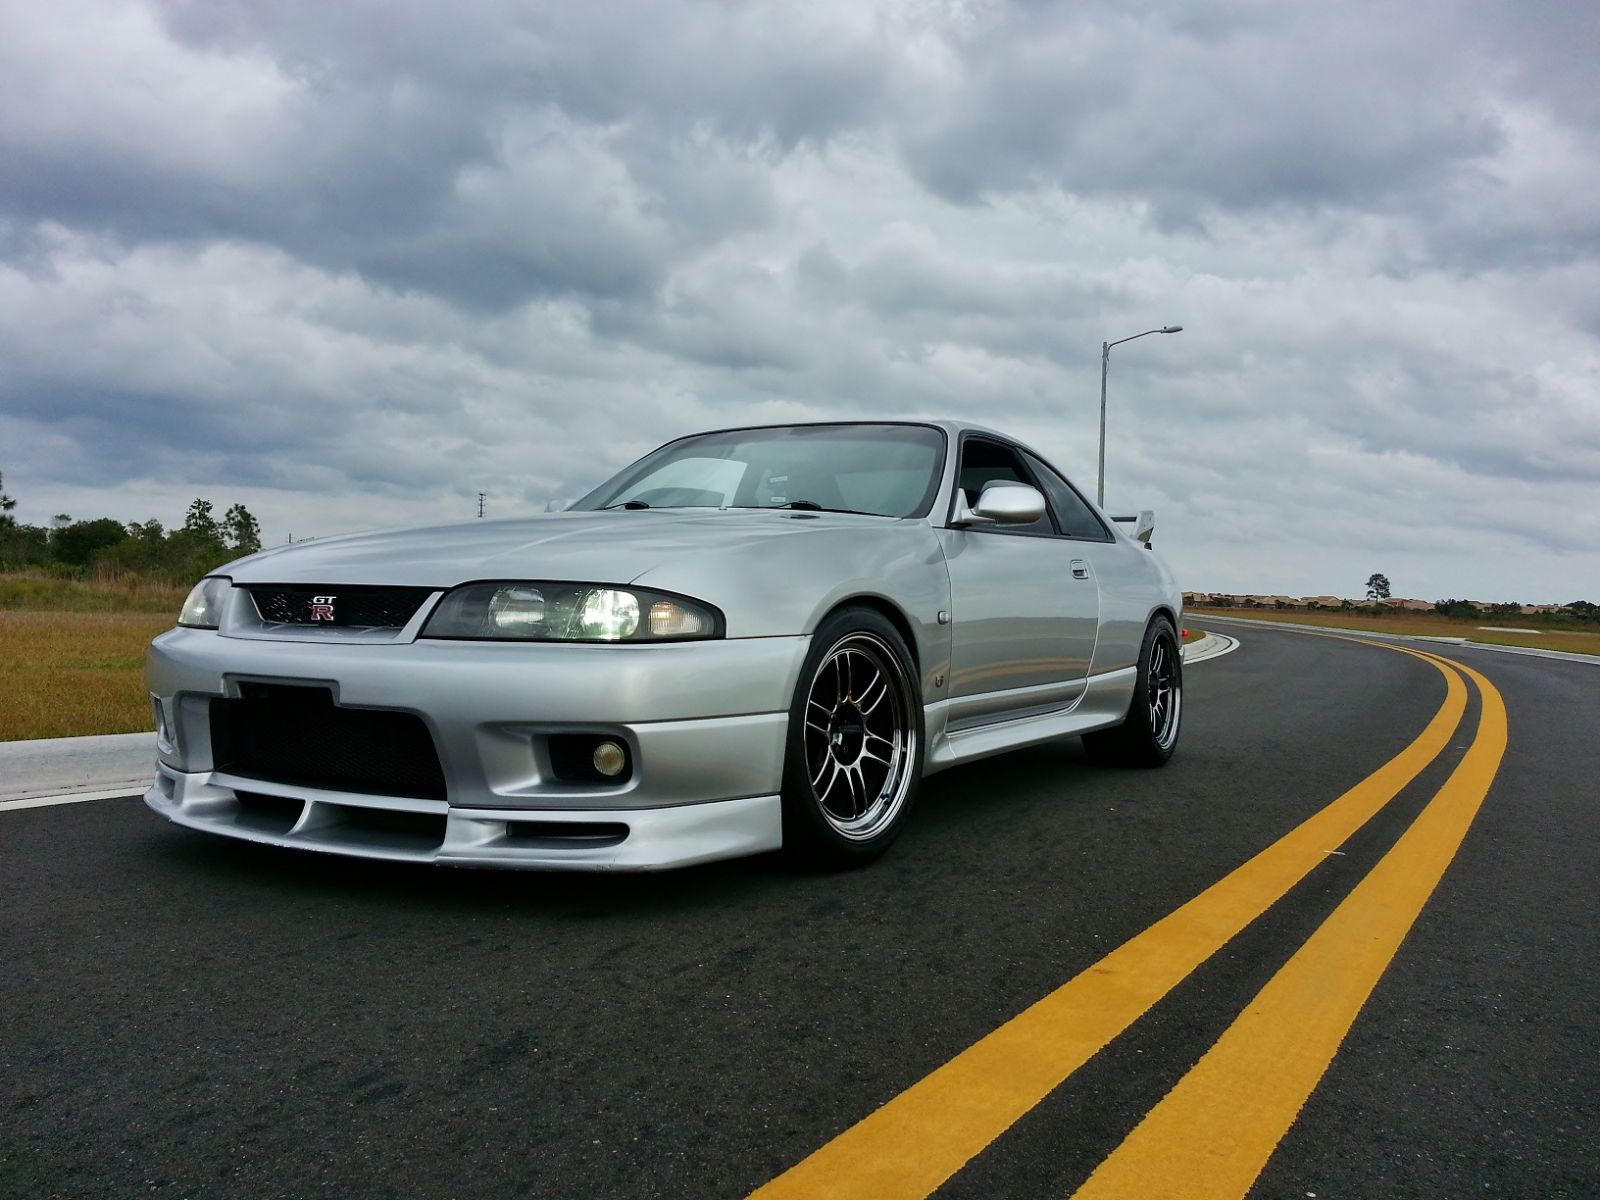 1995 Nissan Skyline R33 Gtr Awd For Sale Miami Beach Florida